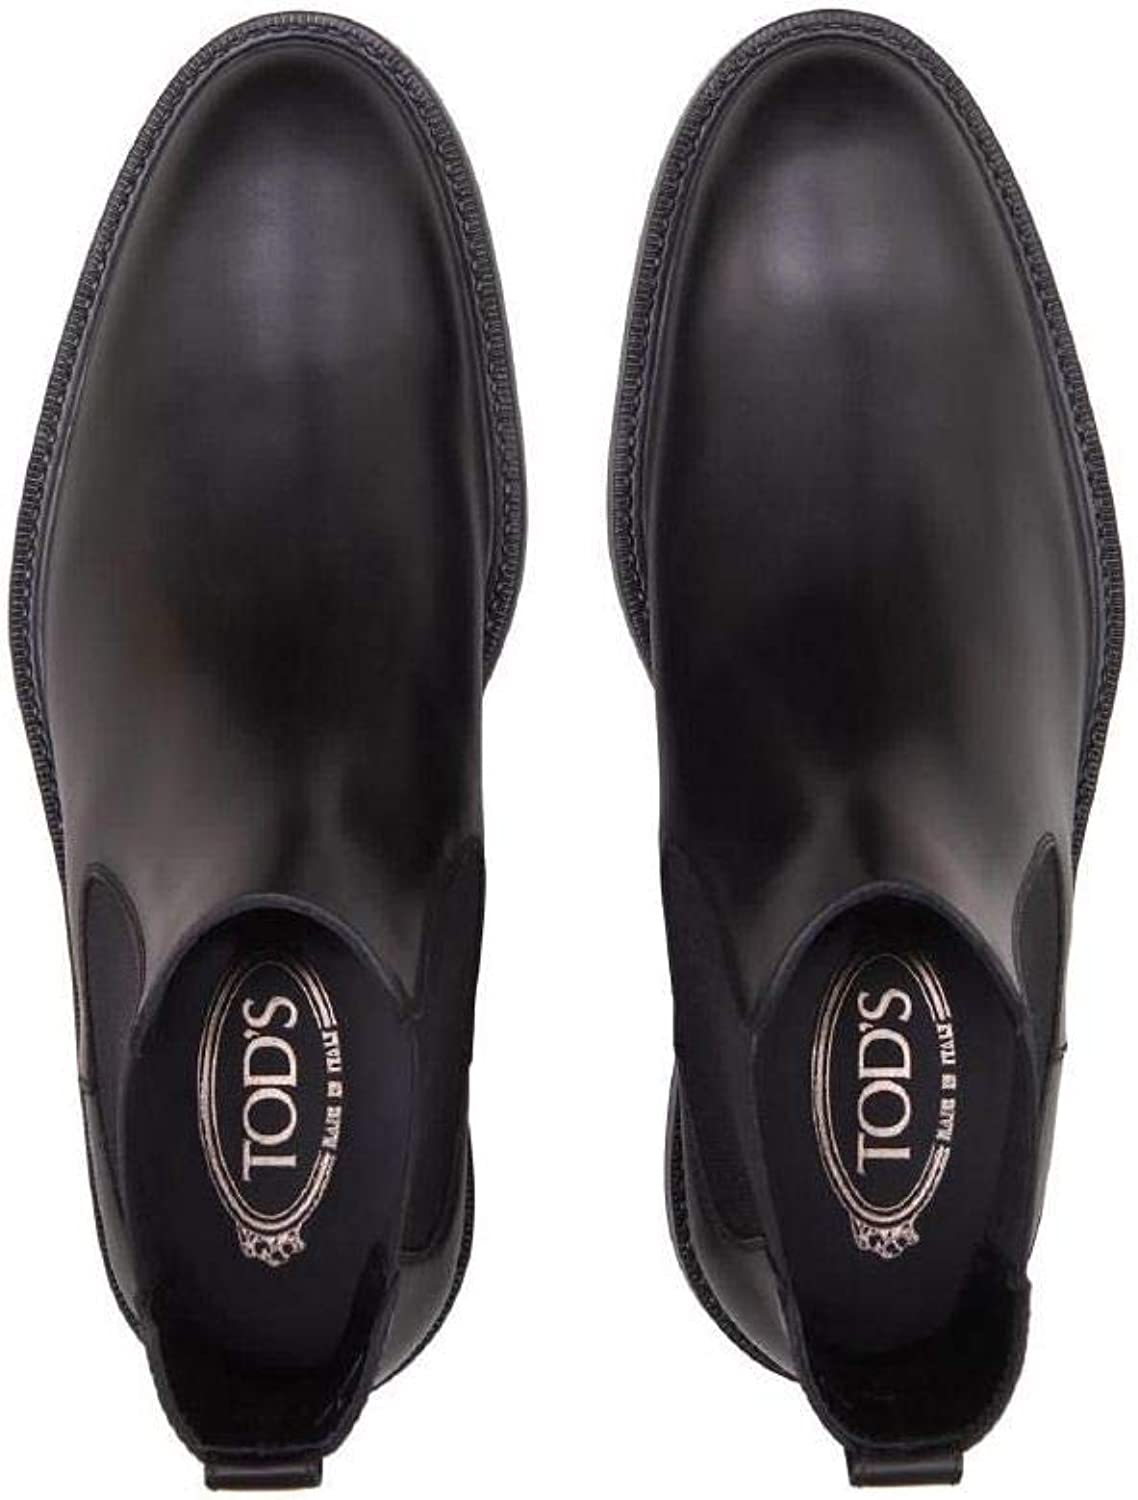 Tod's - Ankle Boots in Black Leather with Side Elastic Inserts - XXM45A00P20D90B999 Schwarz